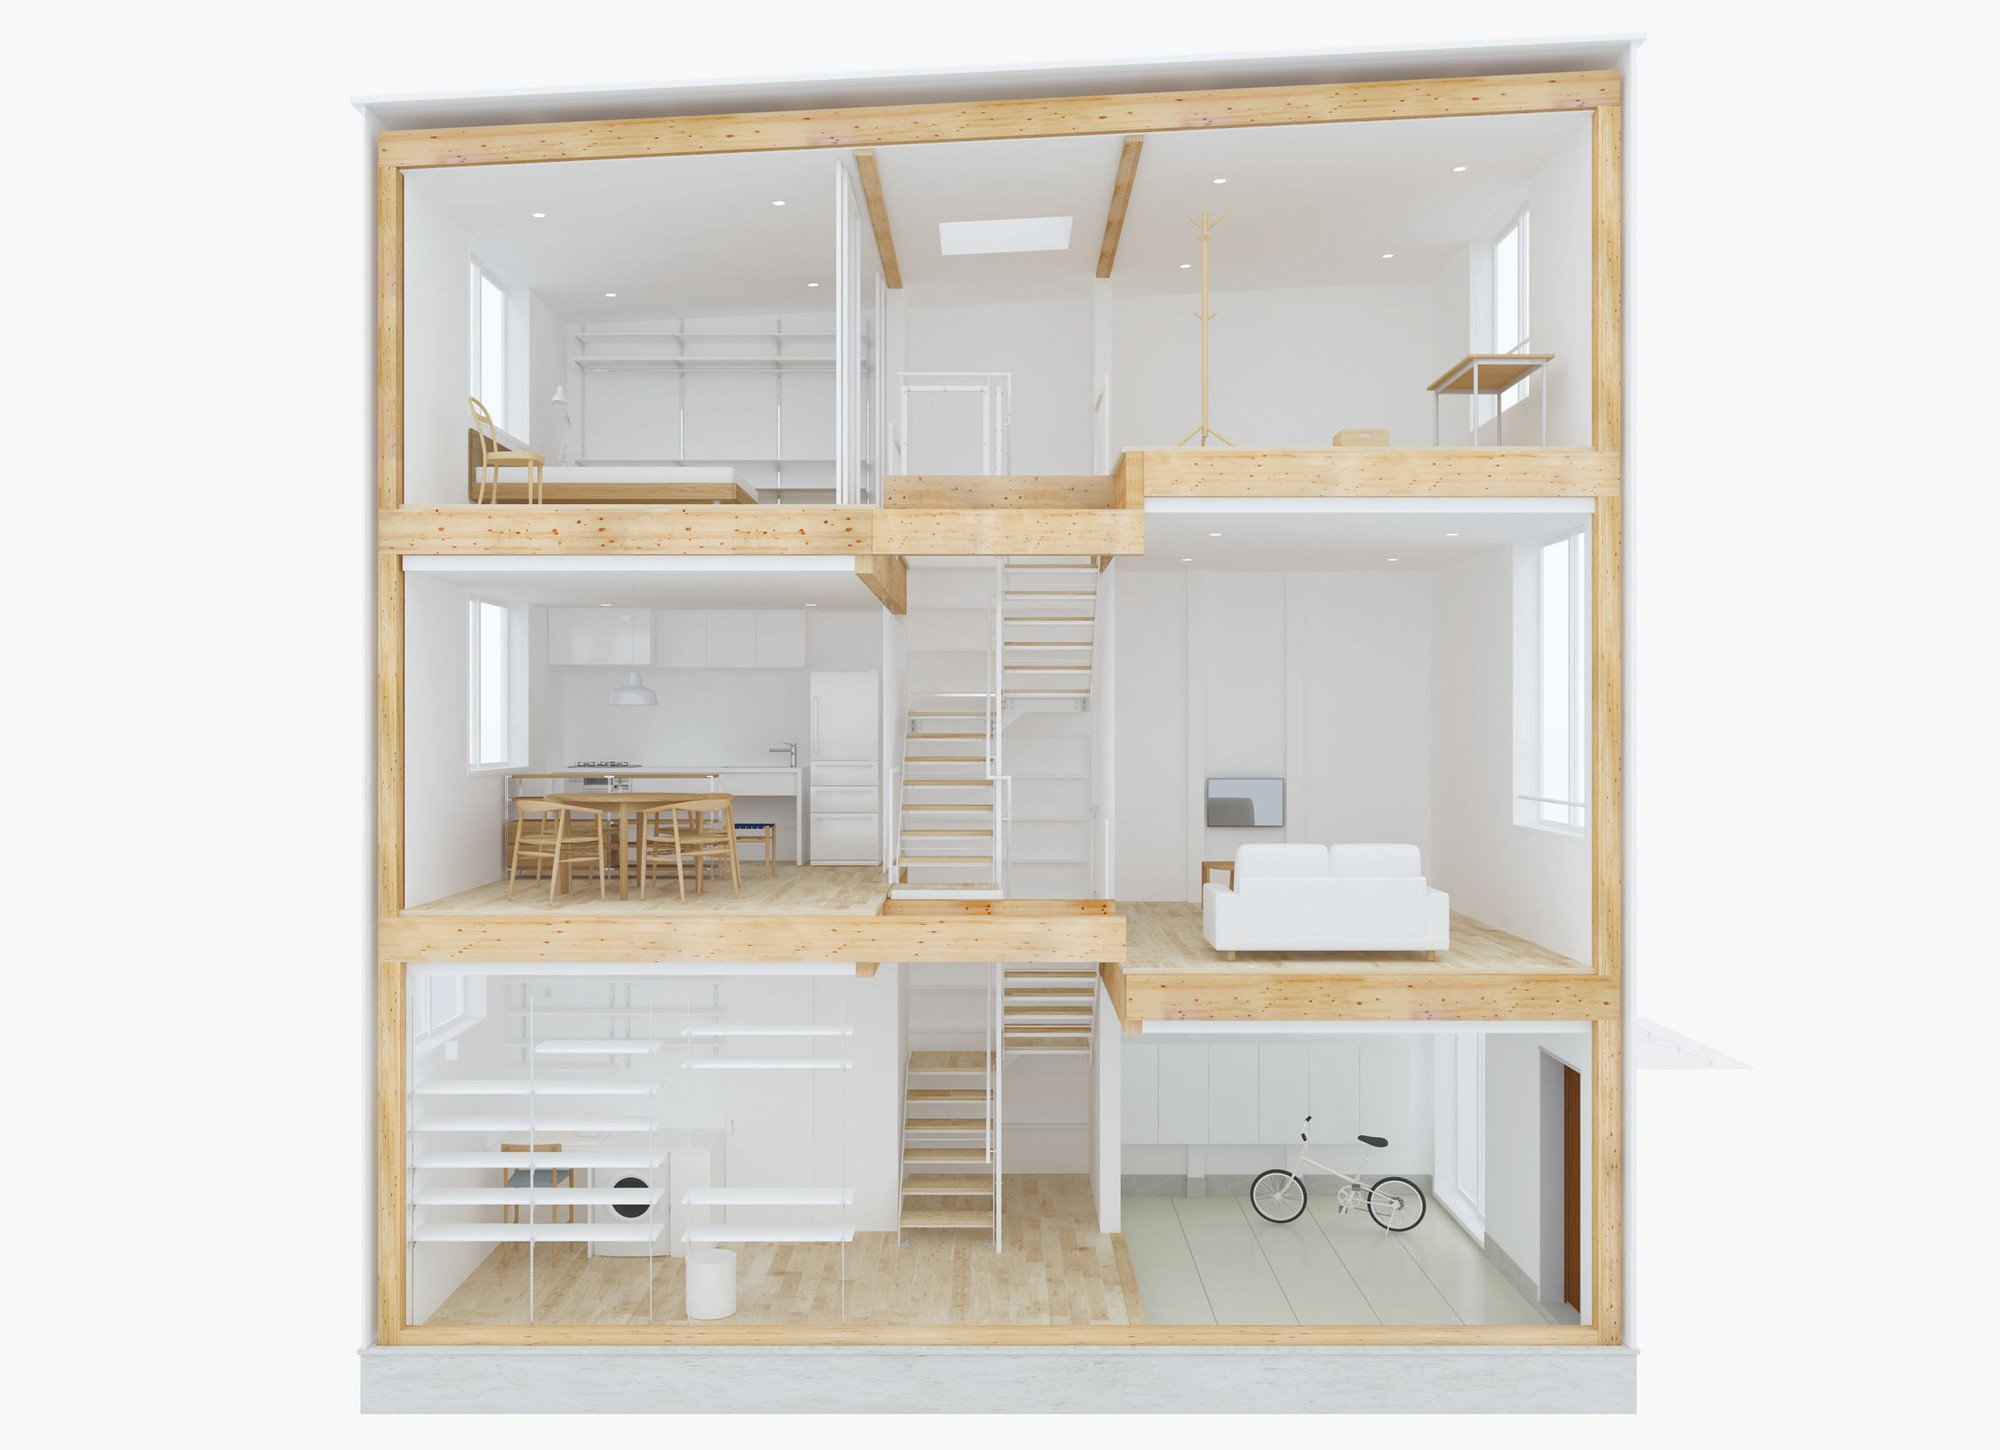 Design Your Own Home With MUJIu0027s Prefab Vertical House,Courtesy Of MUJI